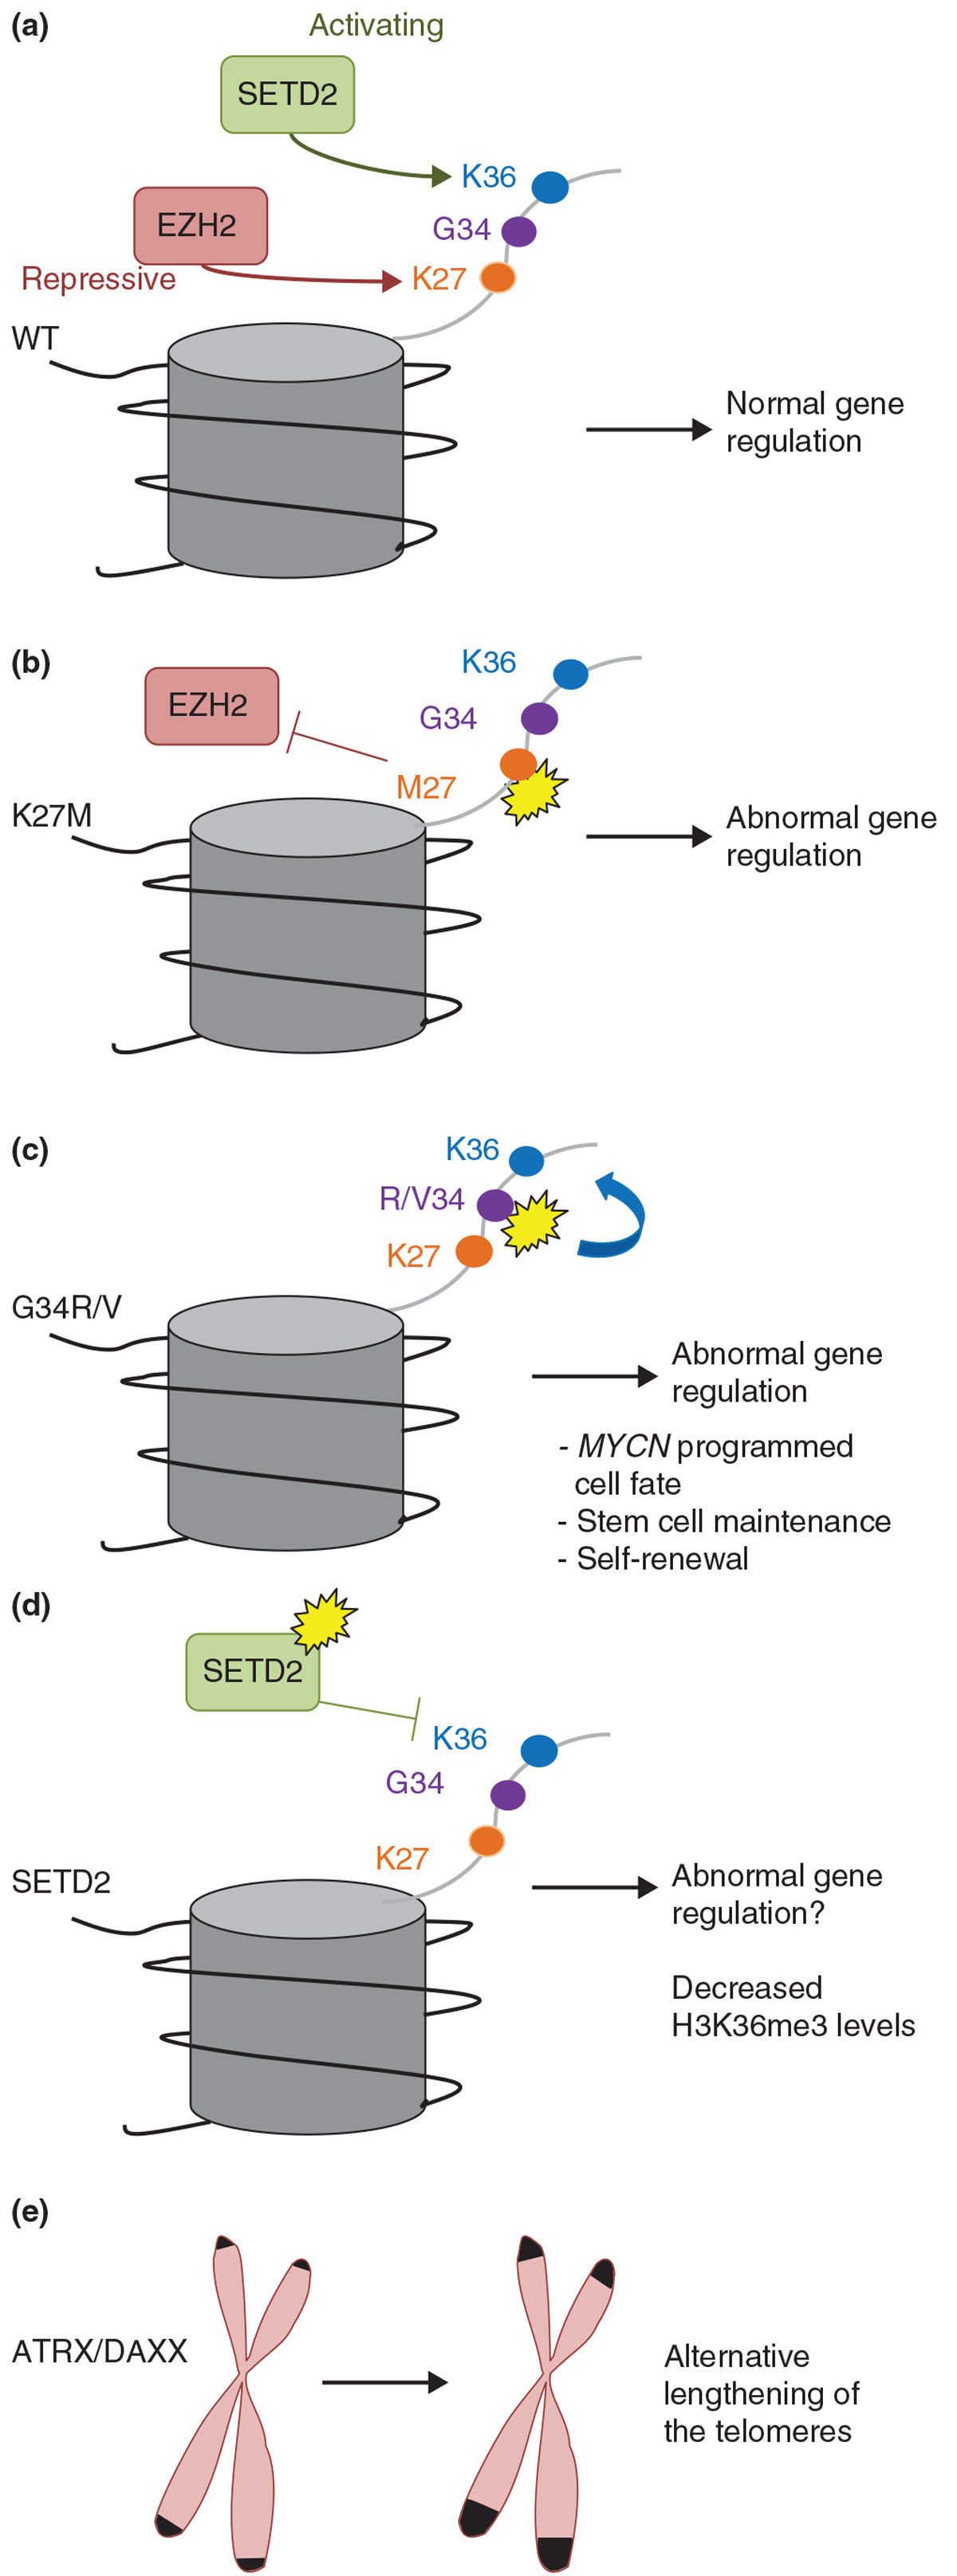 https://static-content.springer.com/image/art%3A10.1186%2Fgm470/MediaObjects/13073_2013_Article_457_Fig2_HTML.jpg